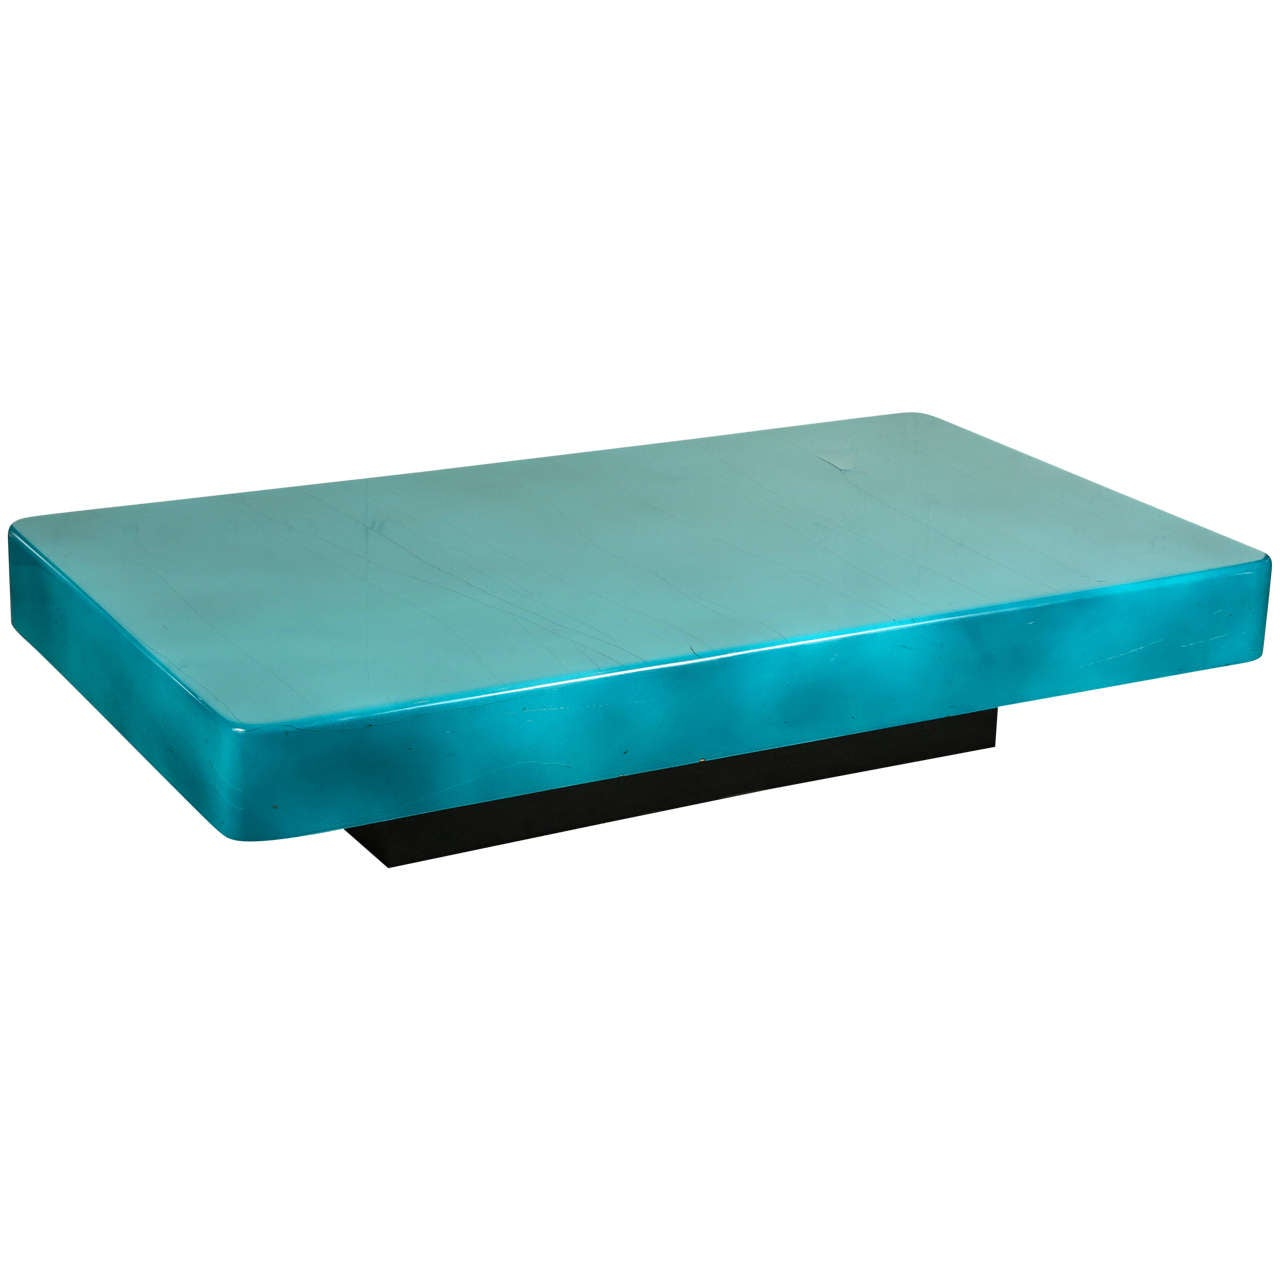 Stunning peacock blue coffee table by aldo tura at 1stdibs for Peacock coffee table